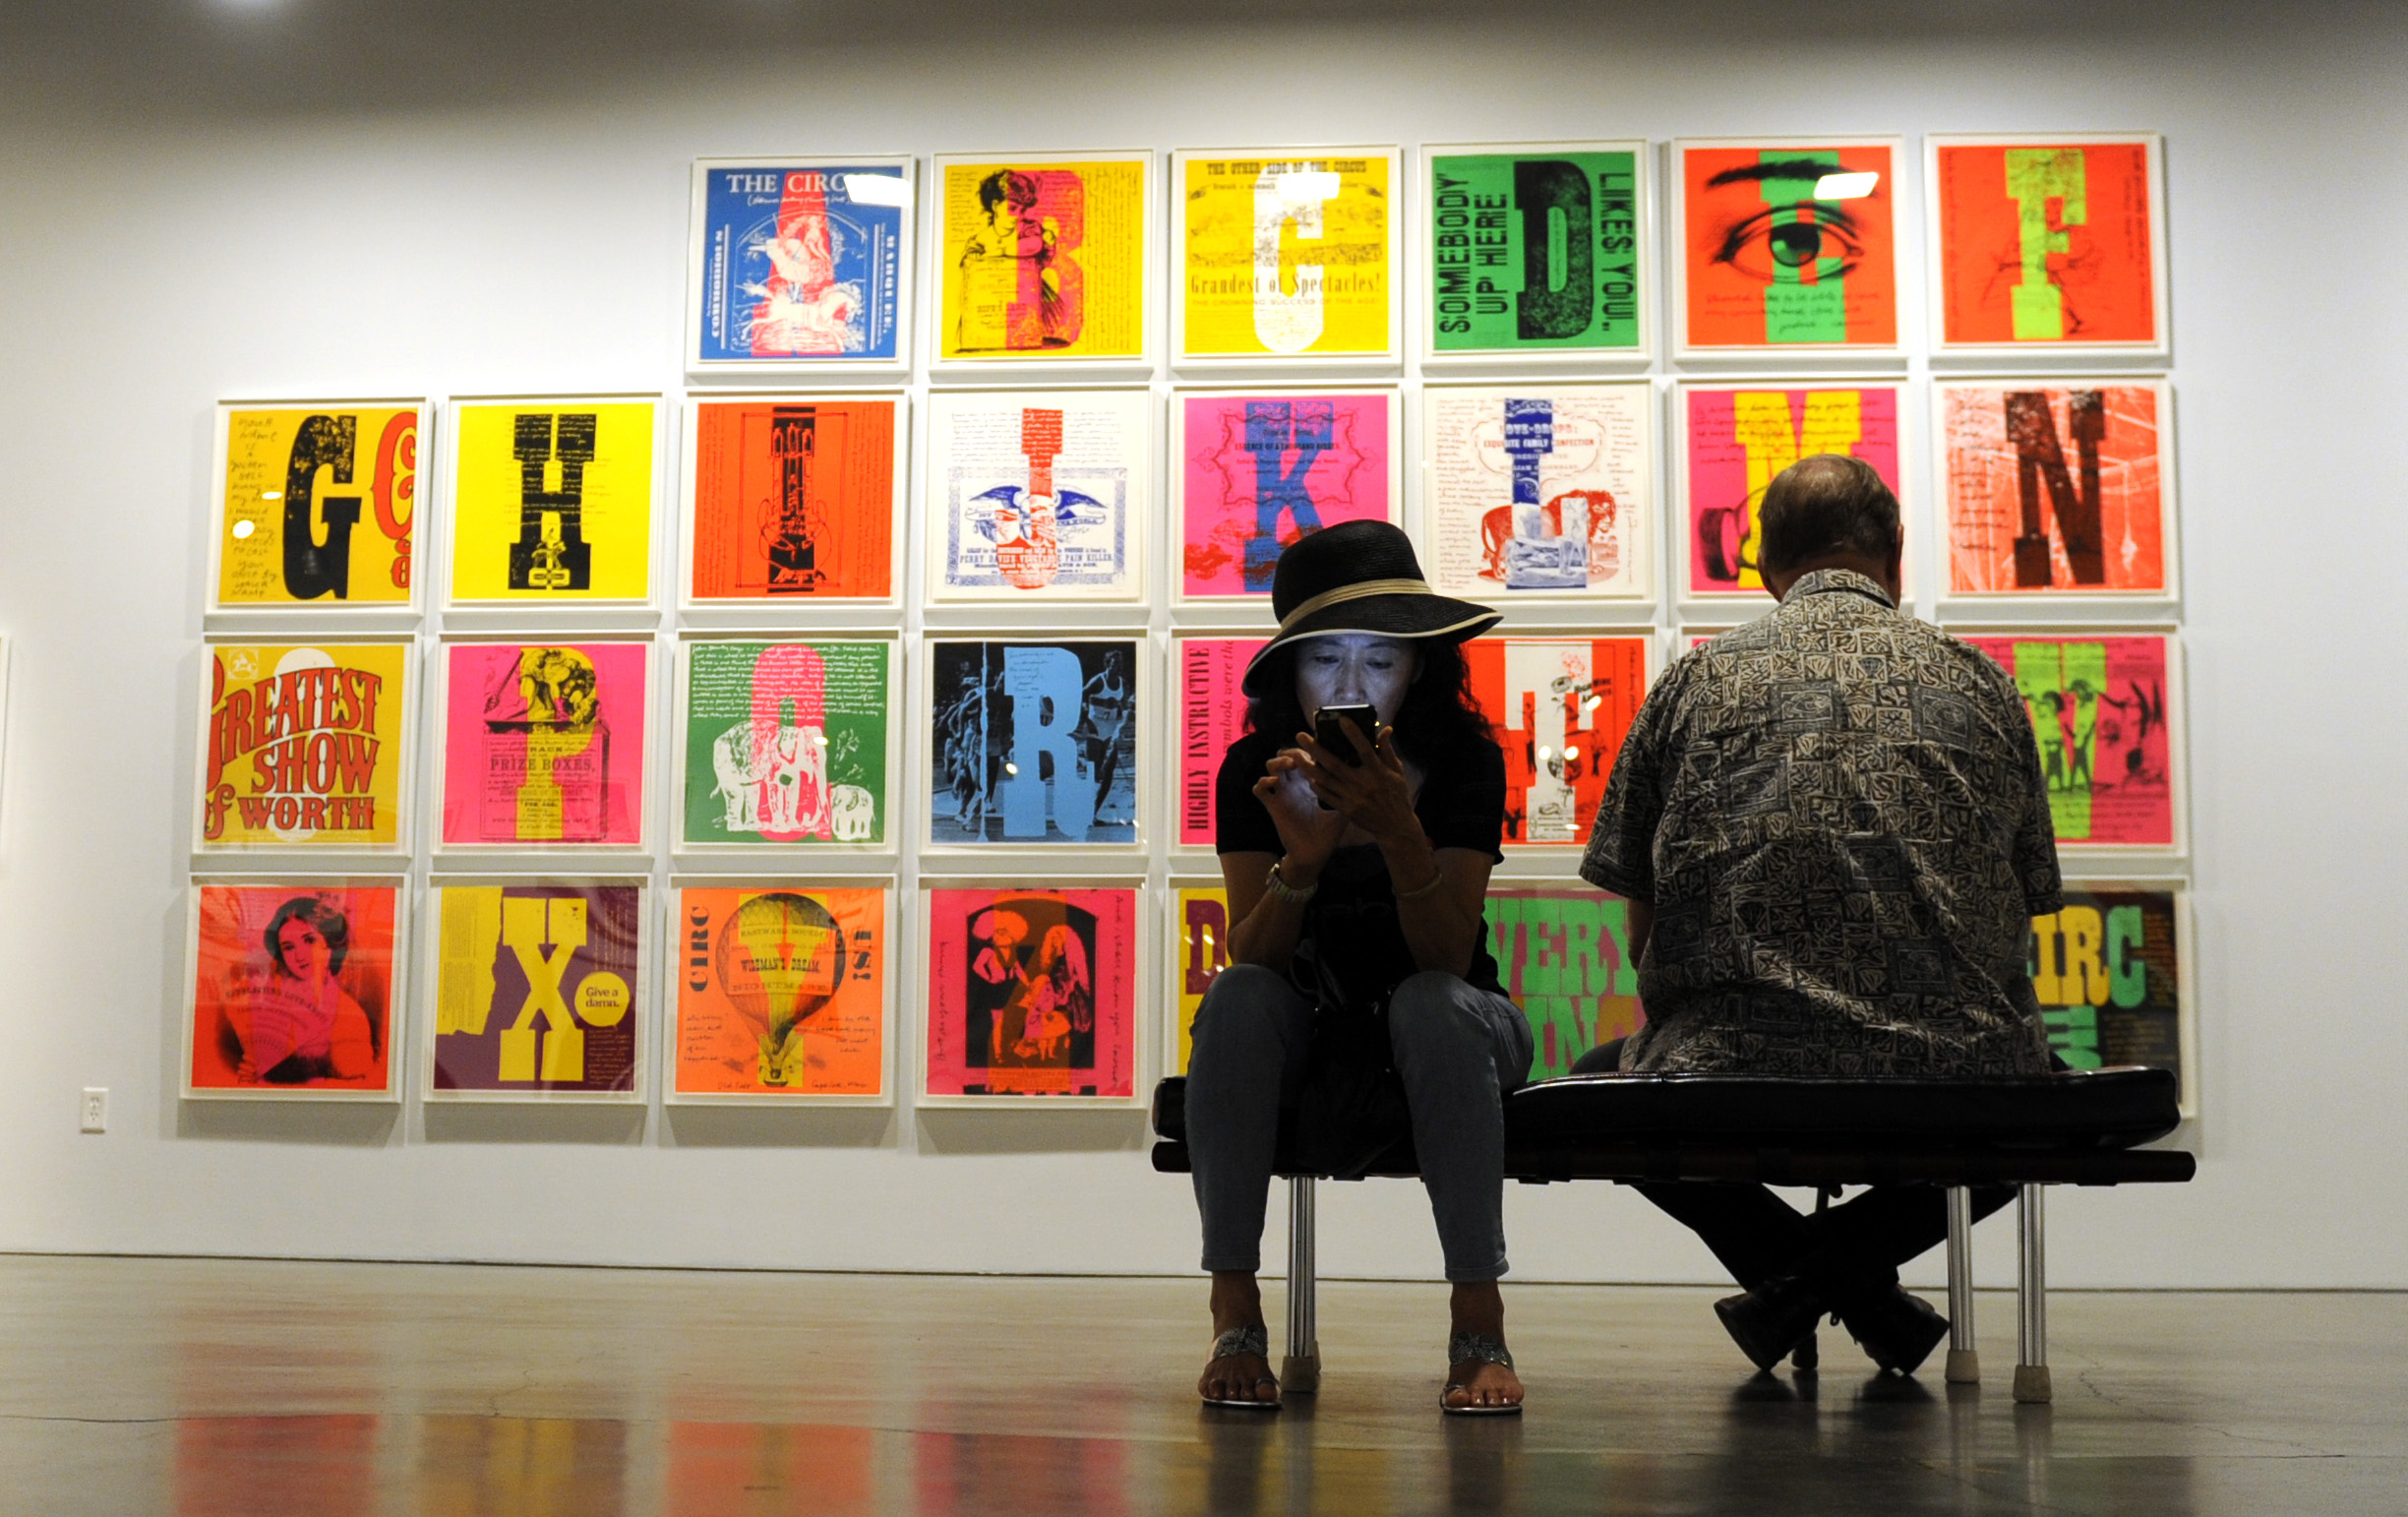 """Glory Huang, left, looks at her phone during a docent tour of """"Someday is Now: The Art of Corita Kent"""" at the Pasadena Museum of California Art on Saturday, July 11, 2015 in Pasadena, Calif."""